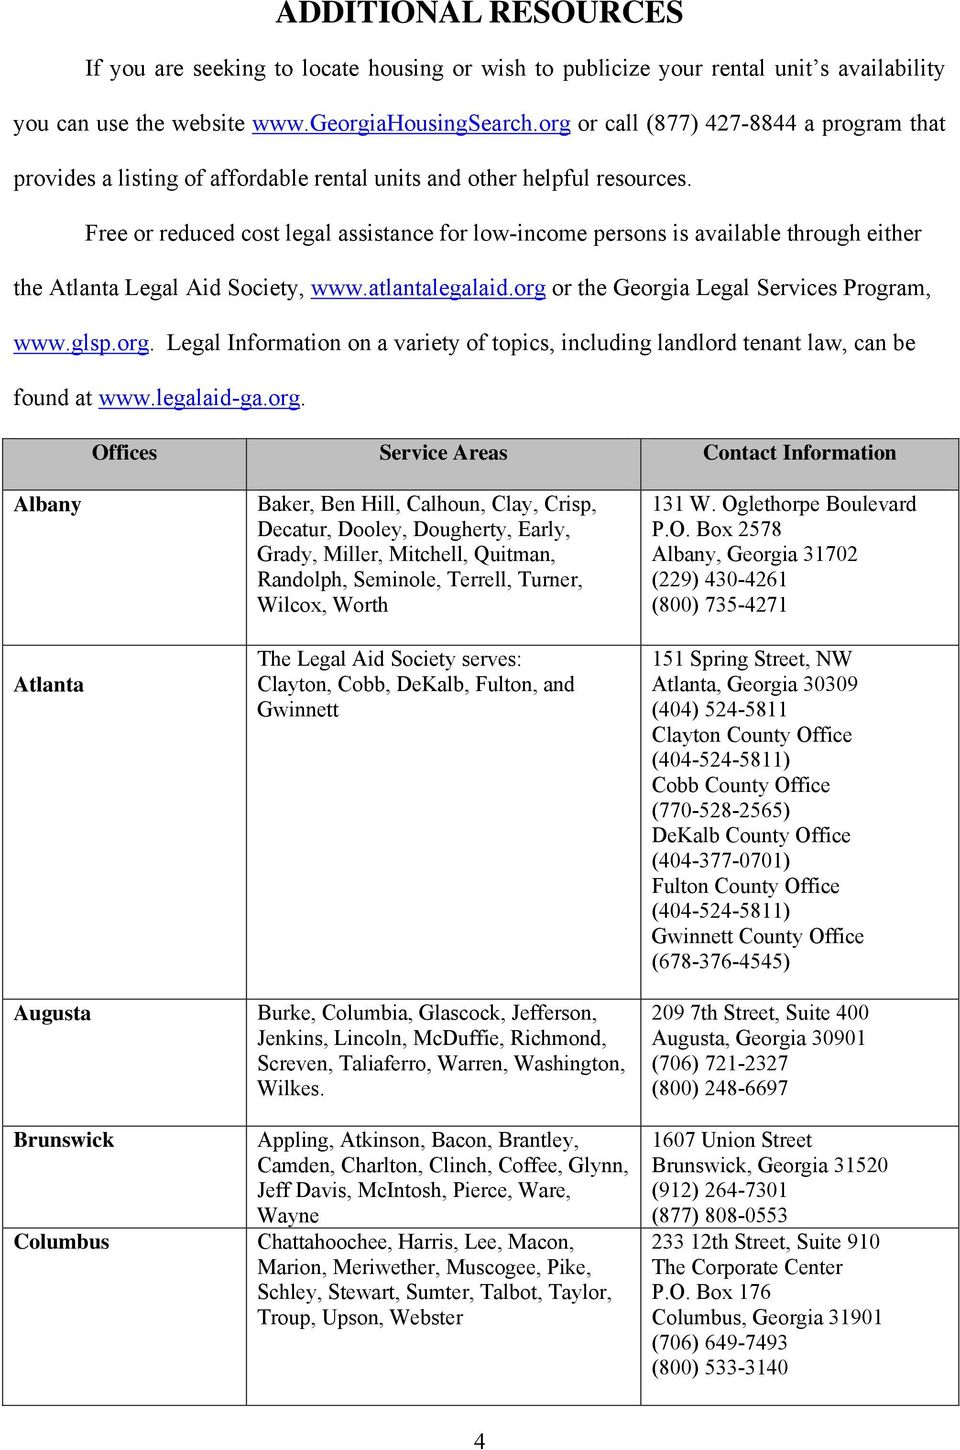 Free or reduced cost legal assistance for low-income persons is available through either the Atlanta Legal Aid Society, www.atlantalegalaid.org